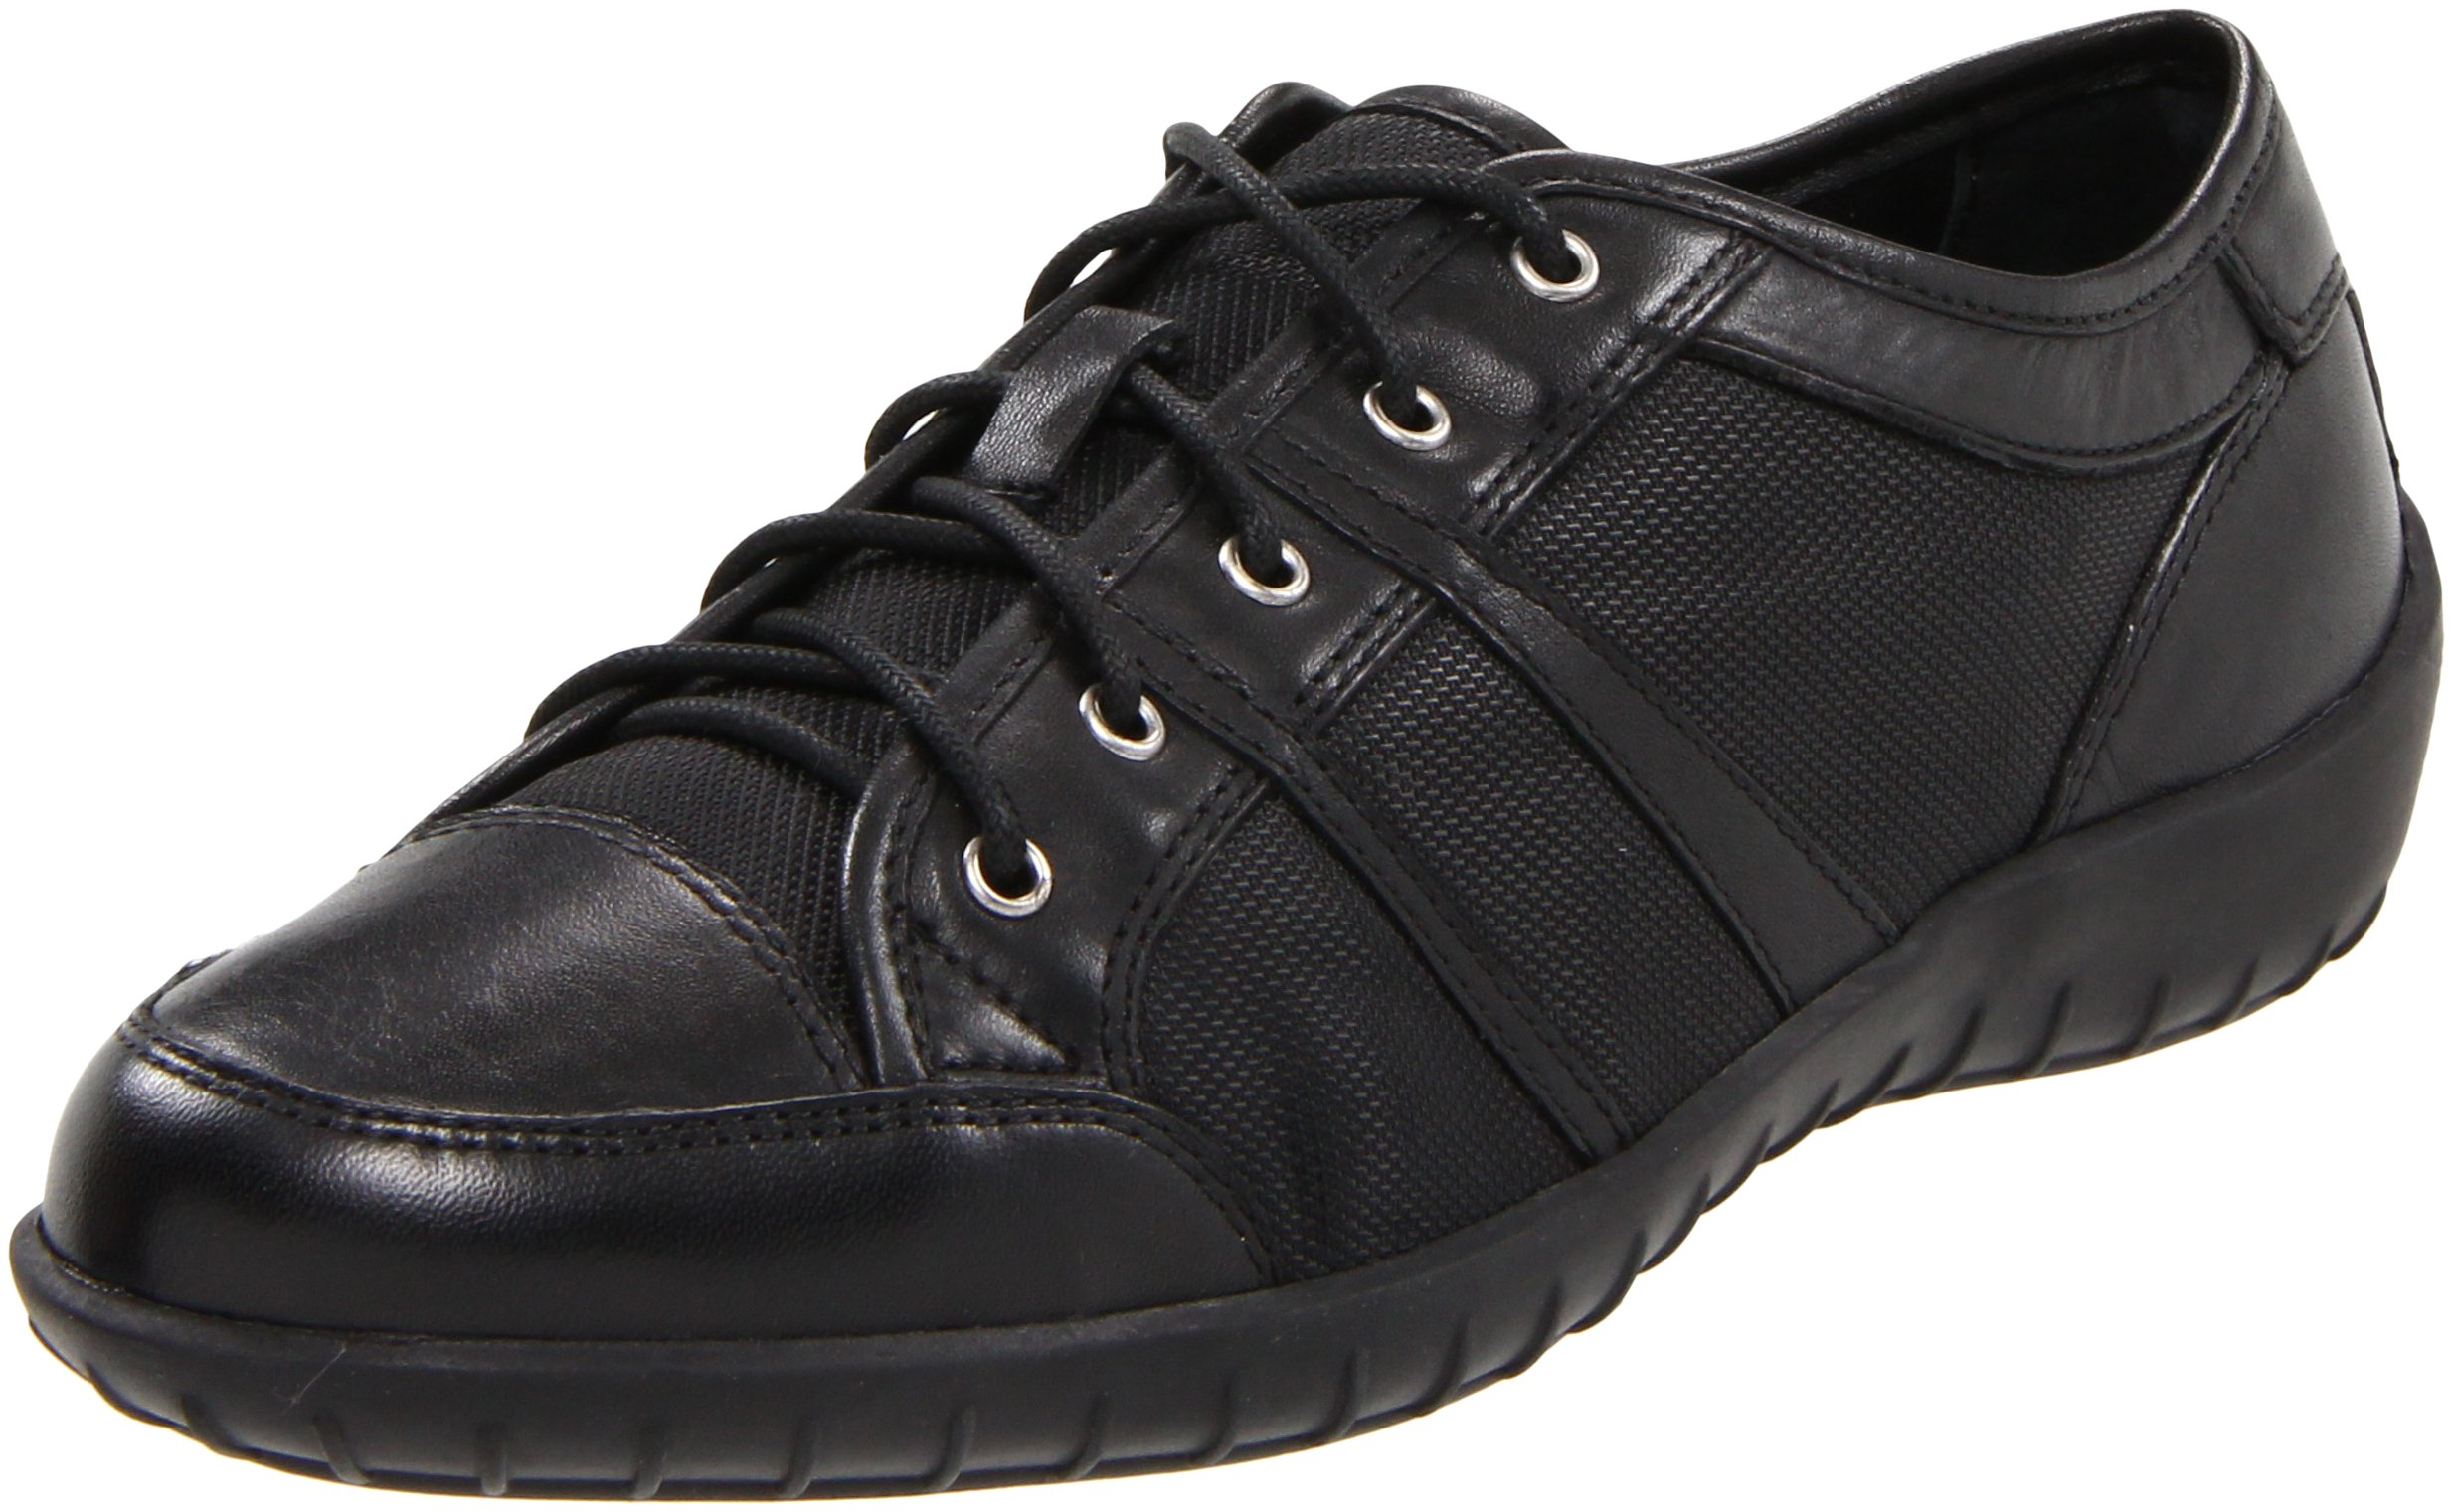 Walking Cradles Women's Corey Walking Shoes,Black Leather/Mesh,6 M US by Walking Cradles